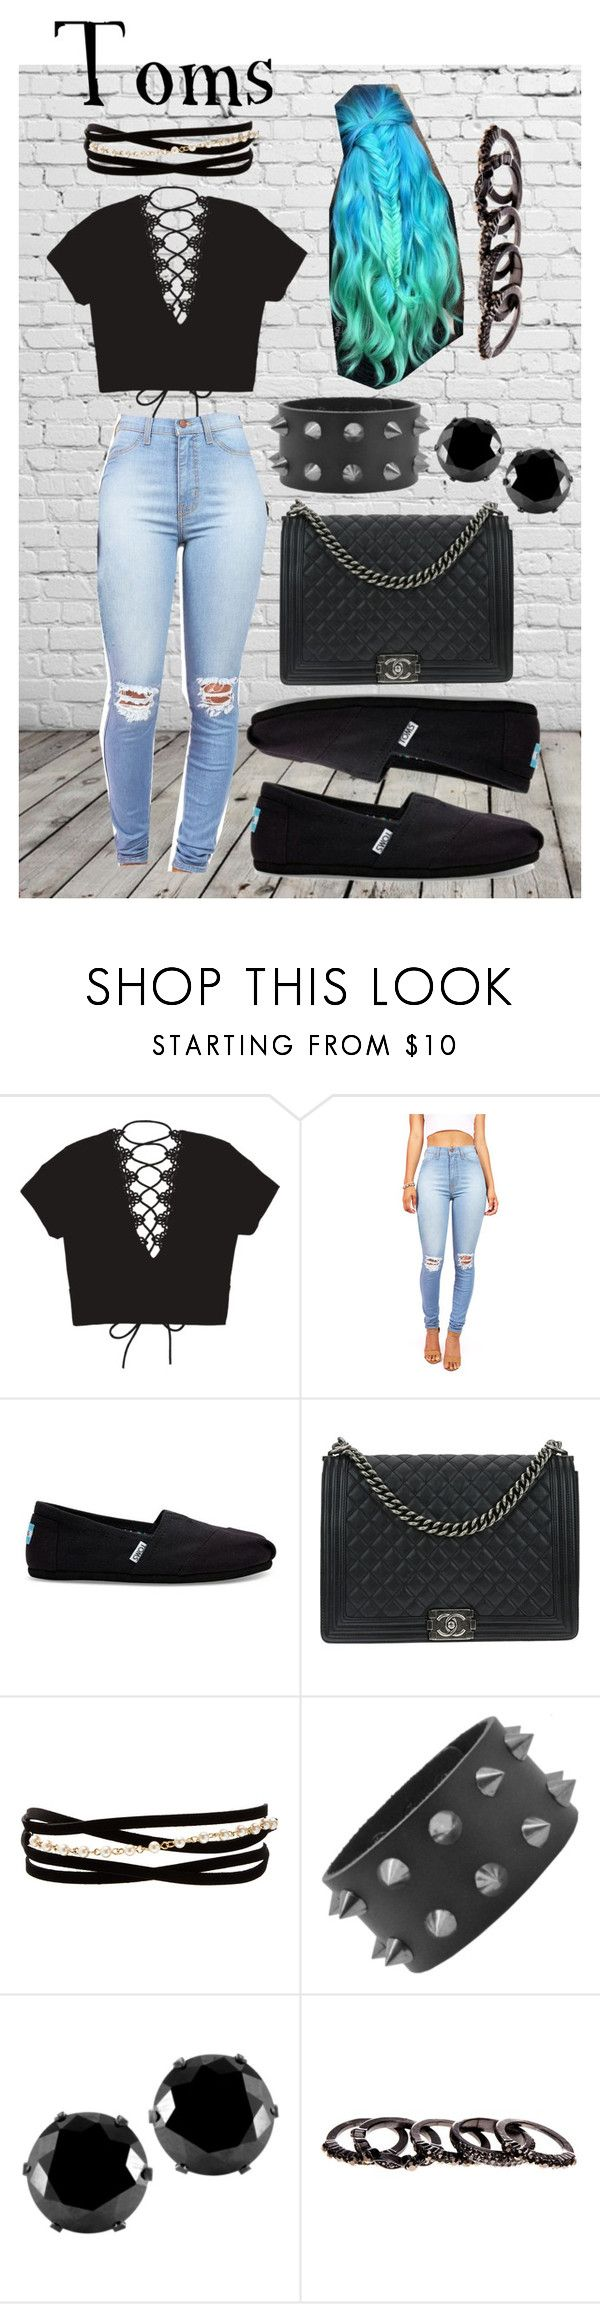 """Toms"" by j3029208g on Polyvore featuring TOMS, Chanel, Kenneth Jay Lane, West Coast Jewelry and Free Press"